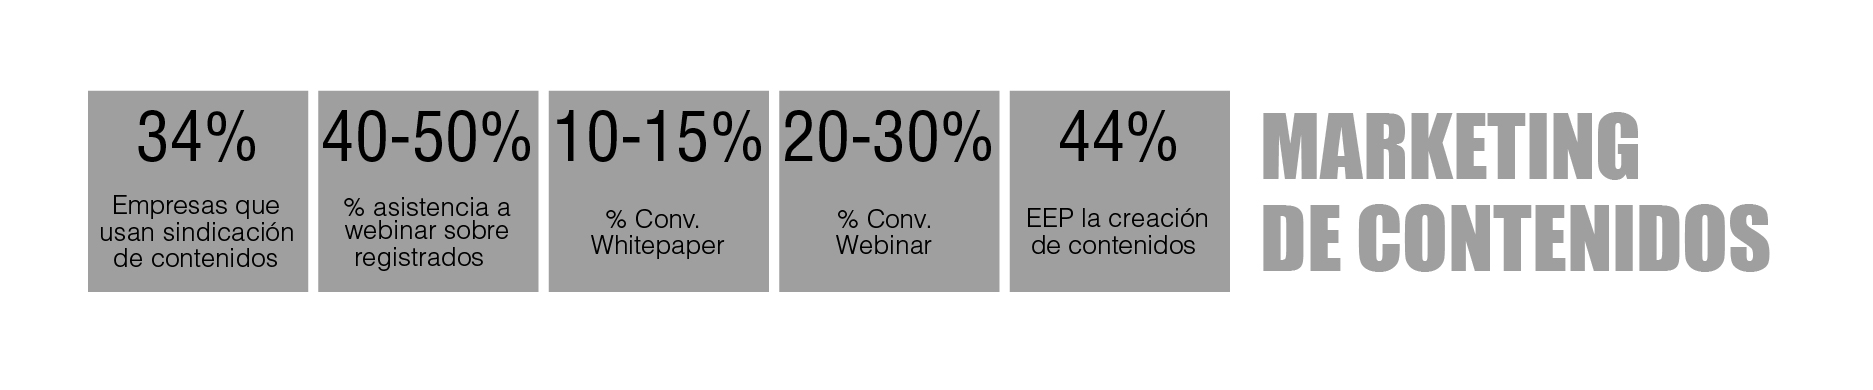 tabla periódica de marketing digital B2B: Marketing de contenidos